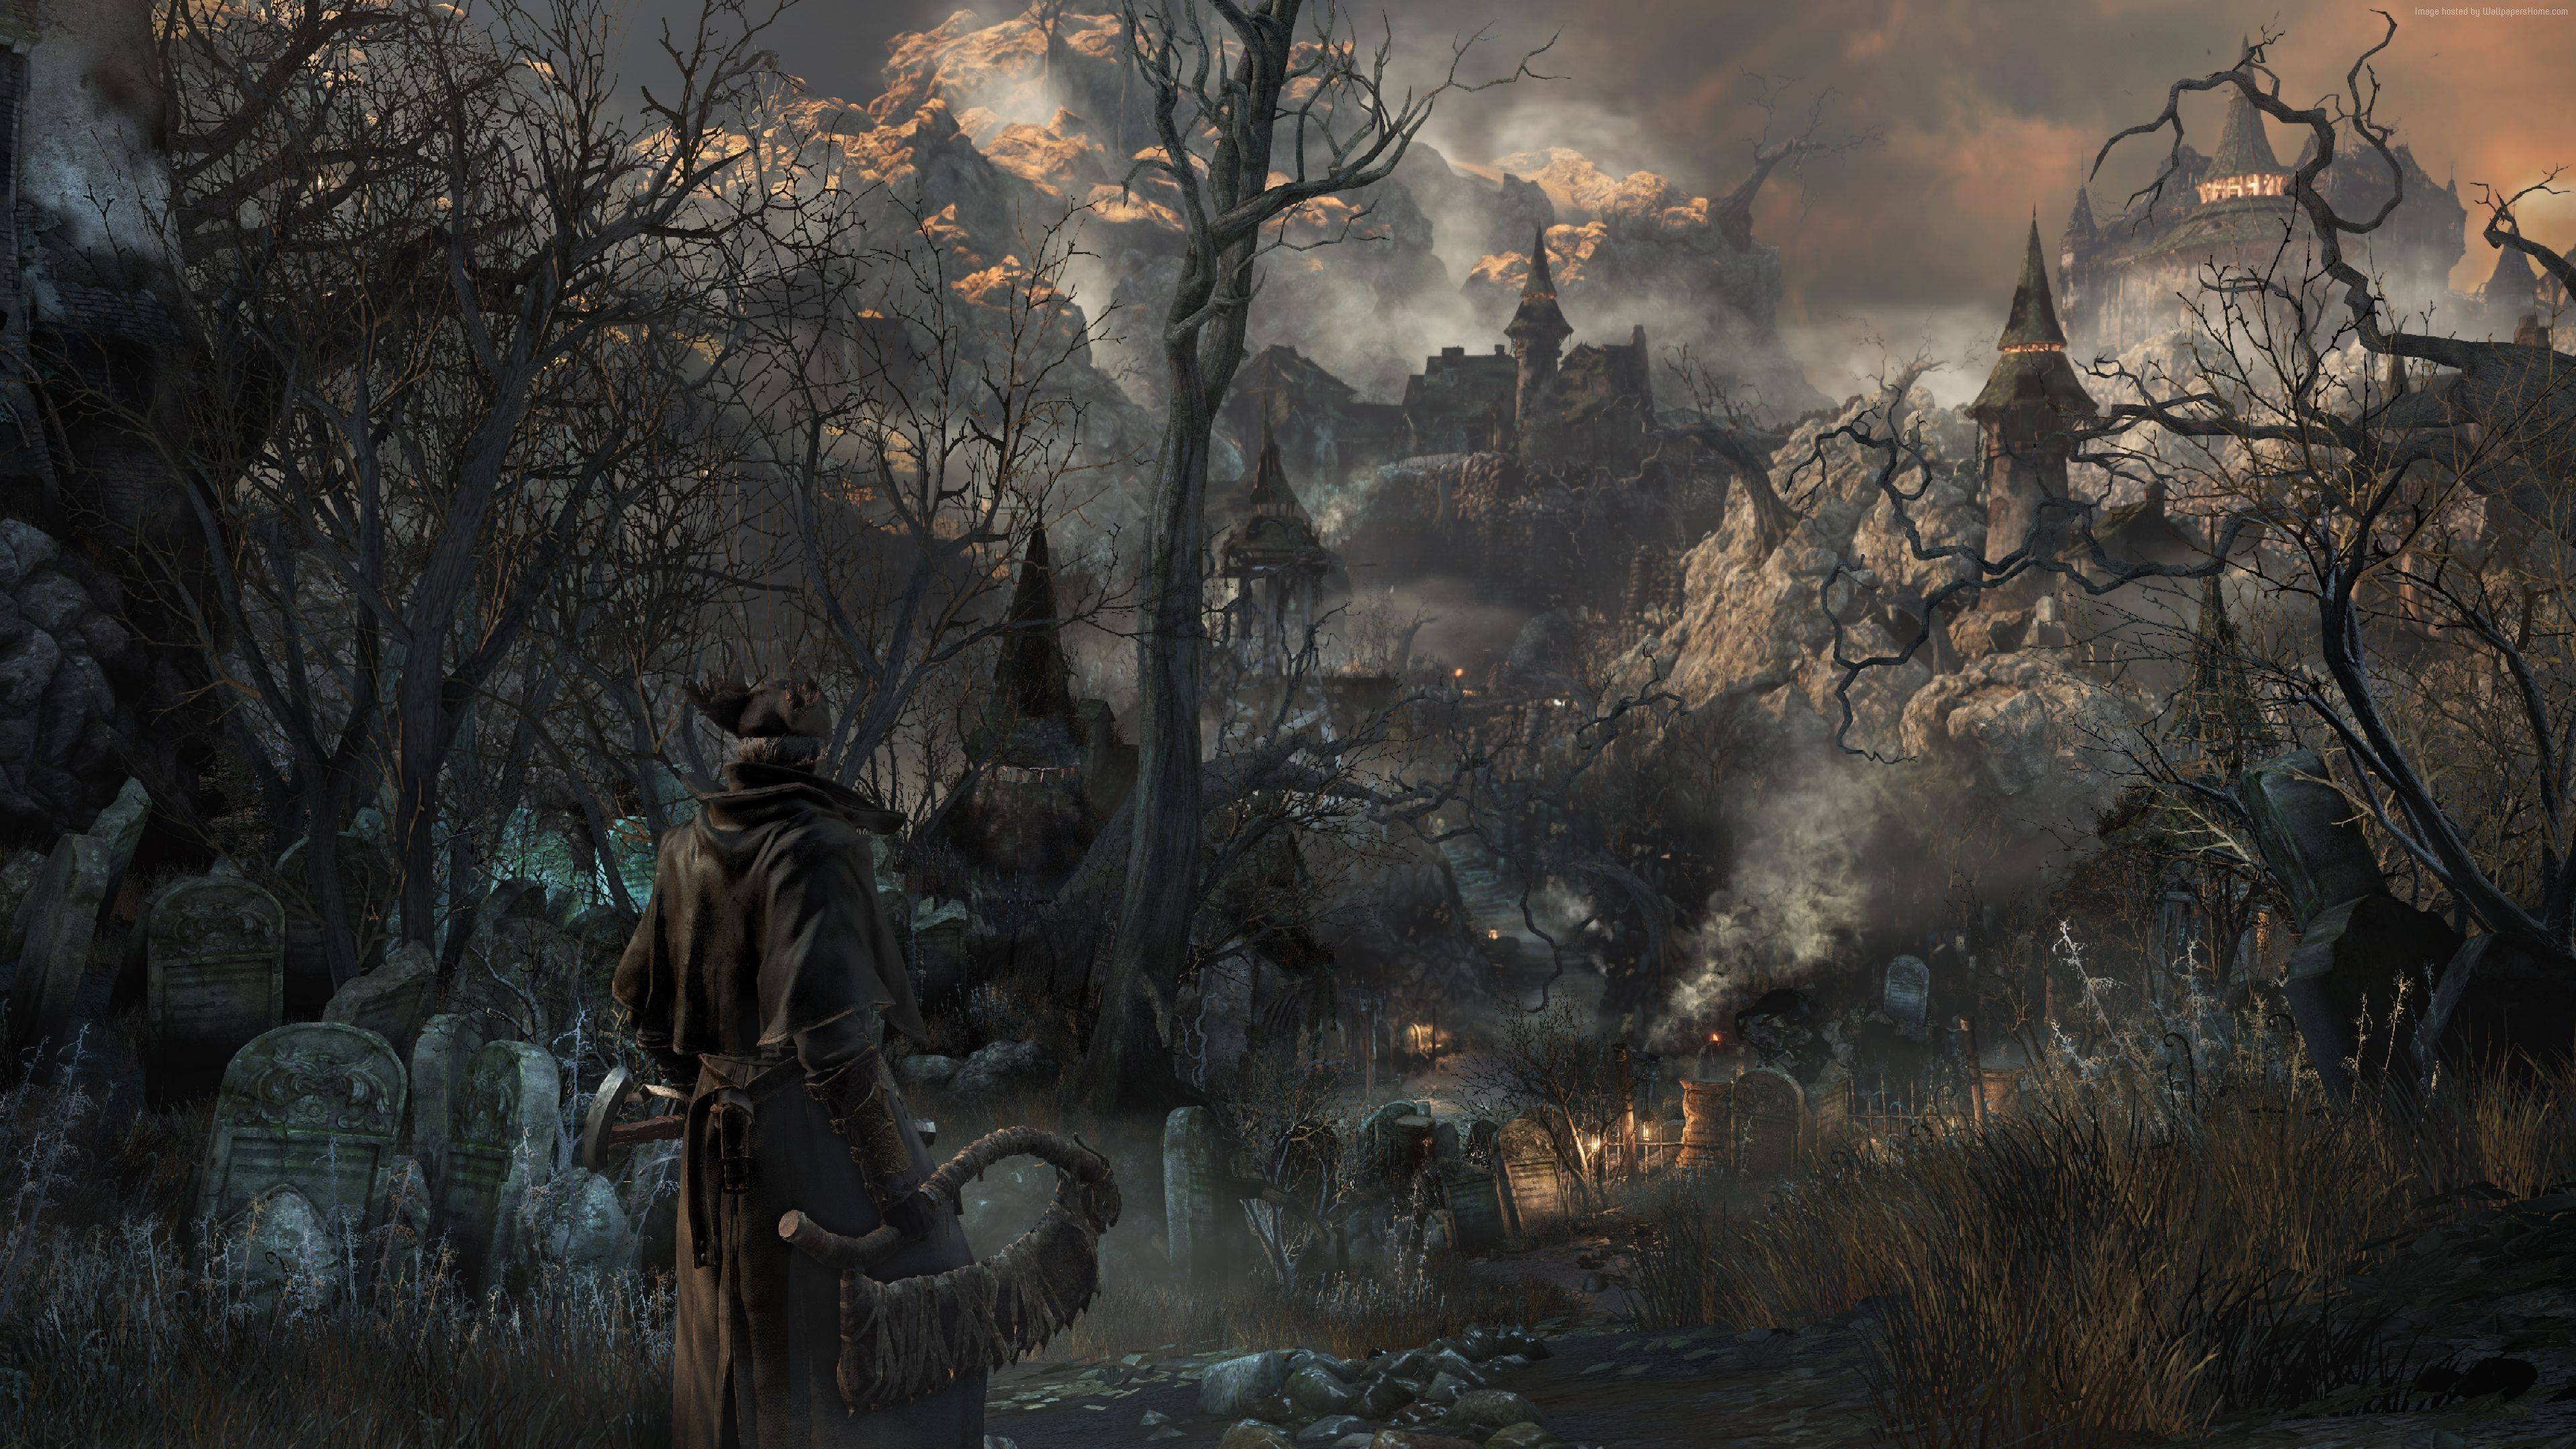 Bloodborne City Wallpapers Top Free Bloodborne City Backgrounds